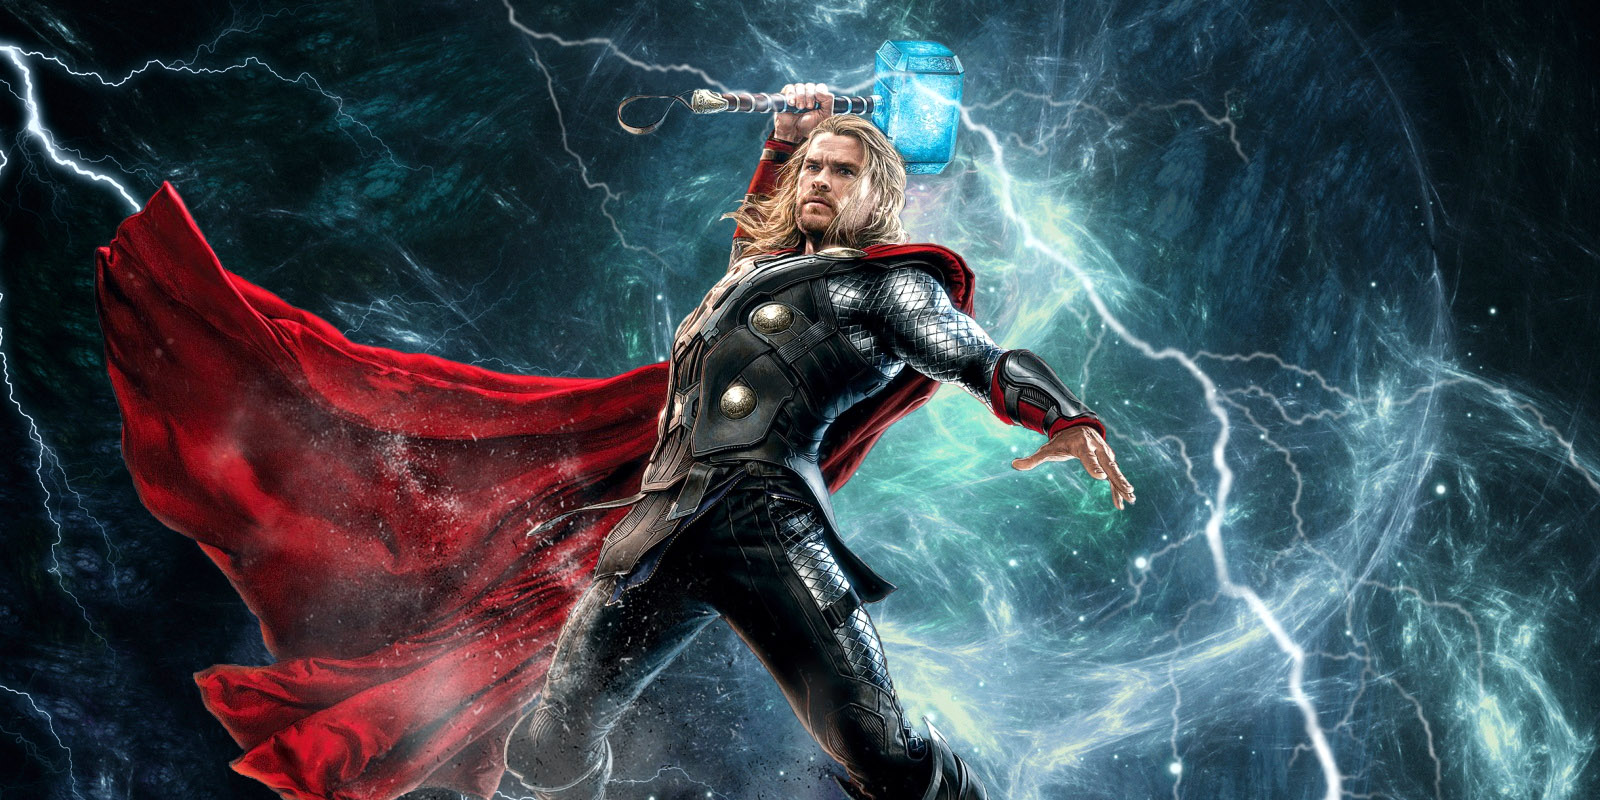 High Resolution Wallpaper | Thor 1600x800 px